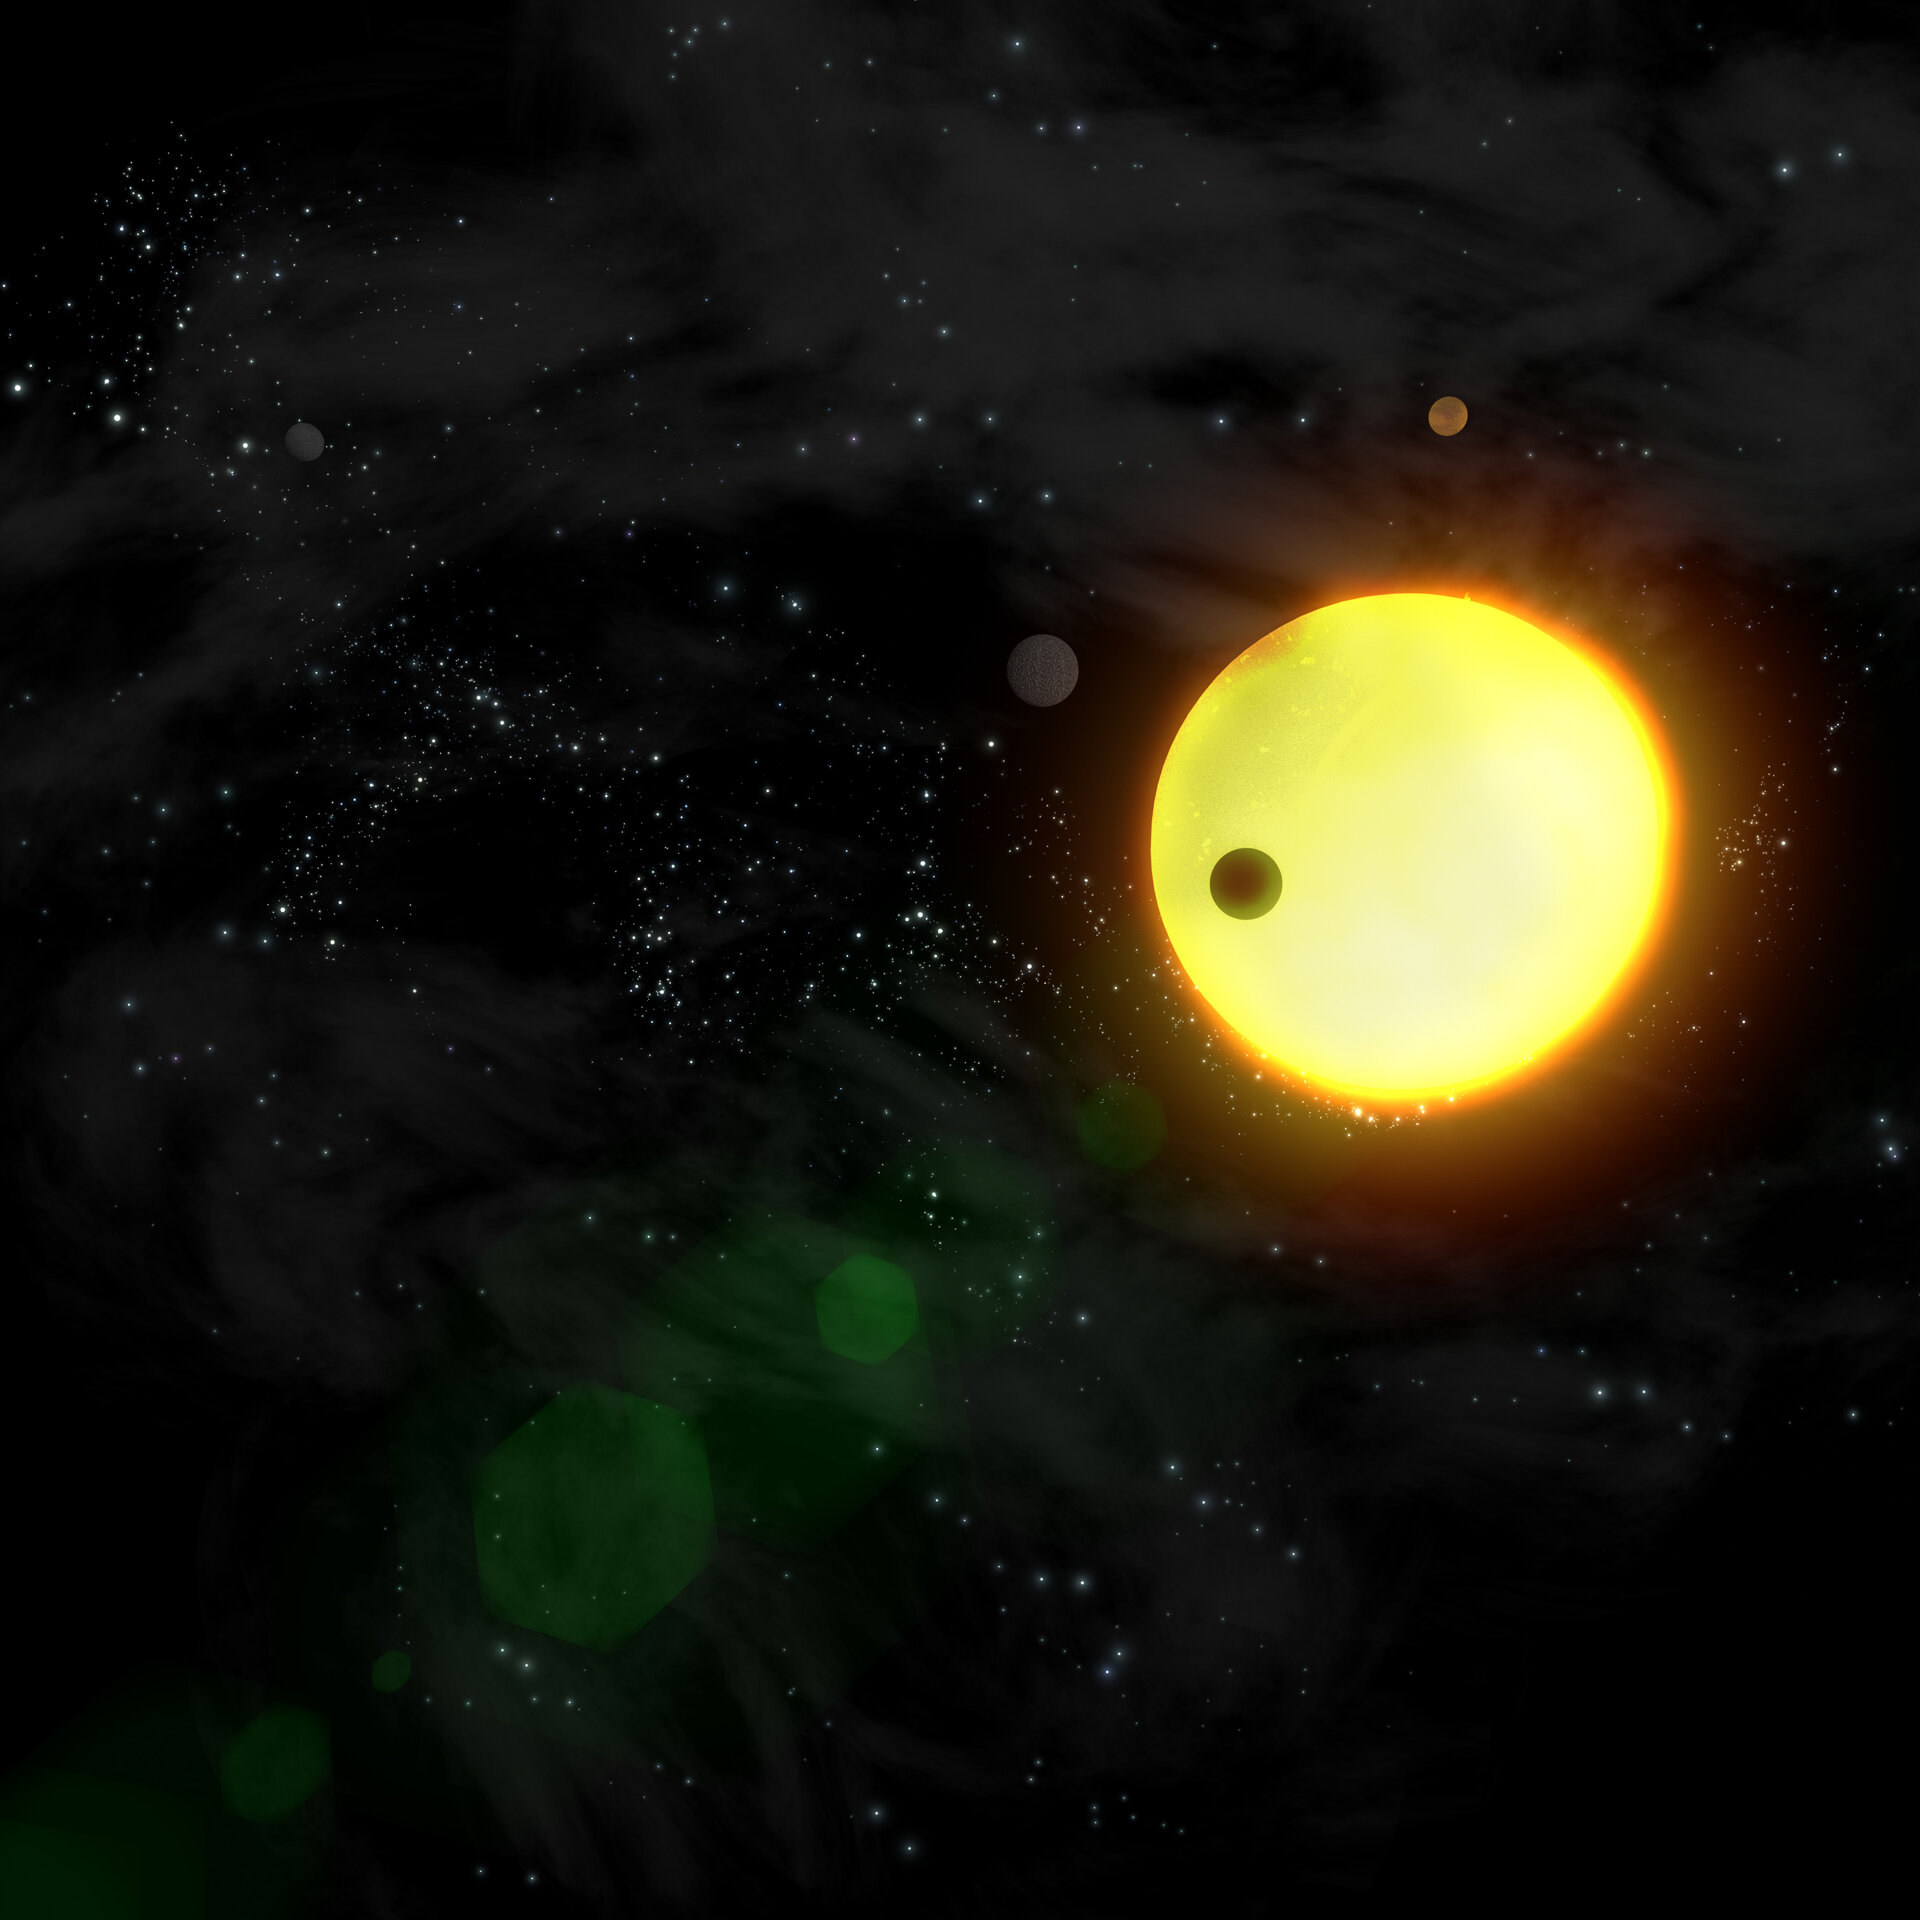 Artist's impression of extrasolar planets orbiting another sun